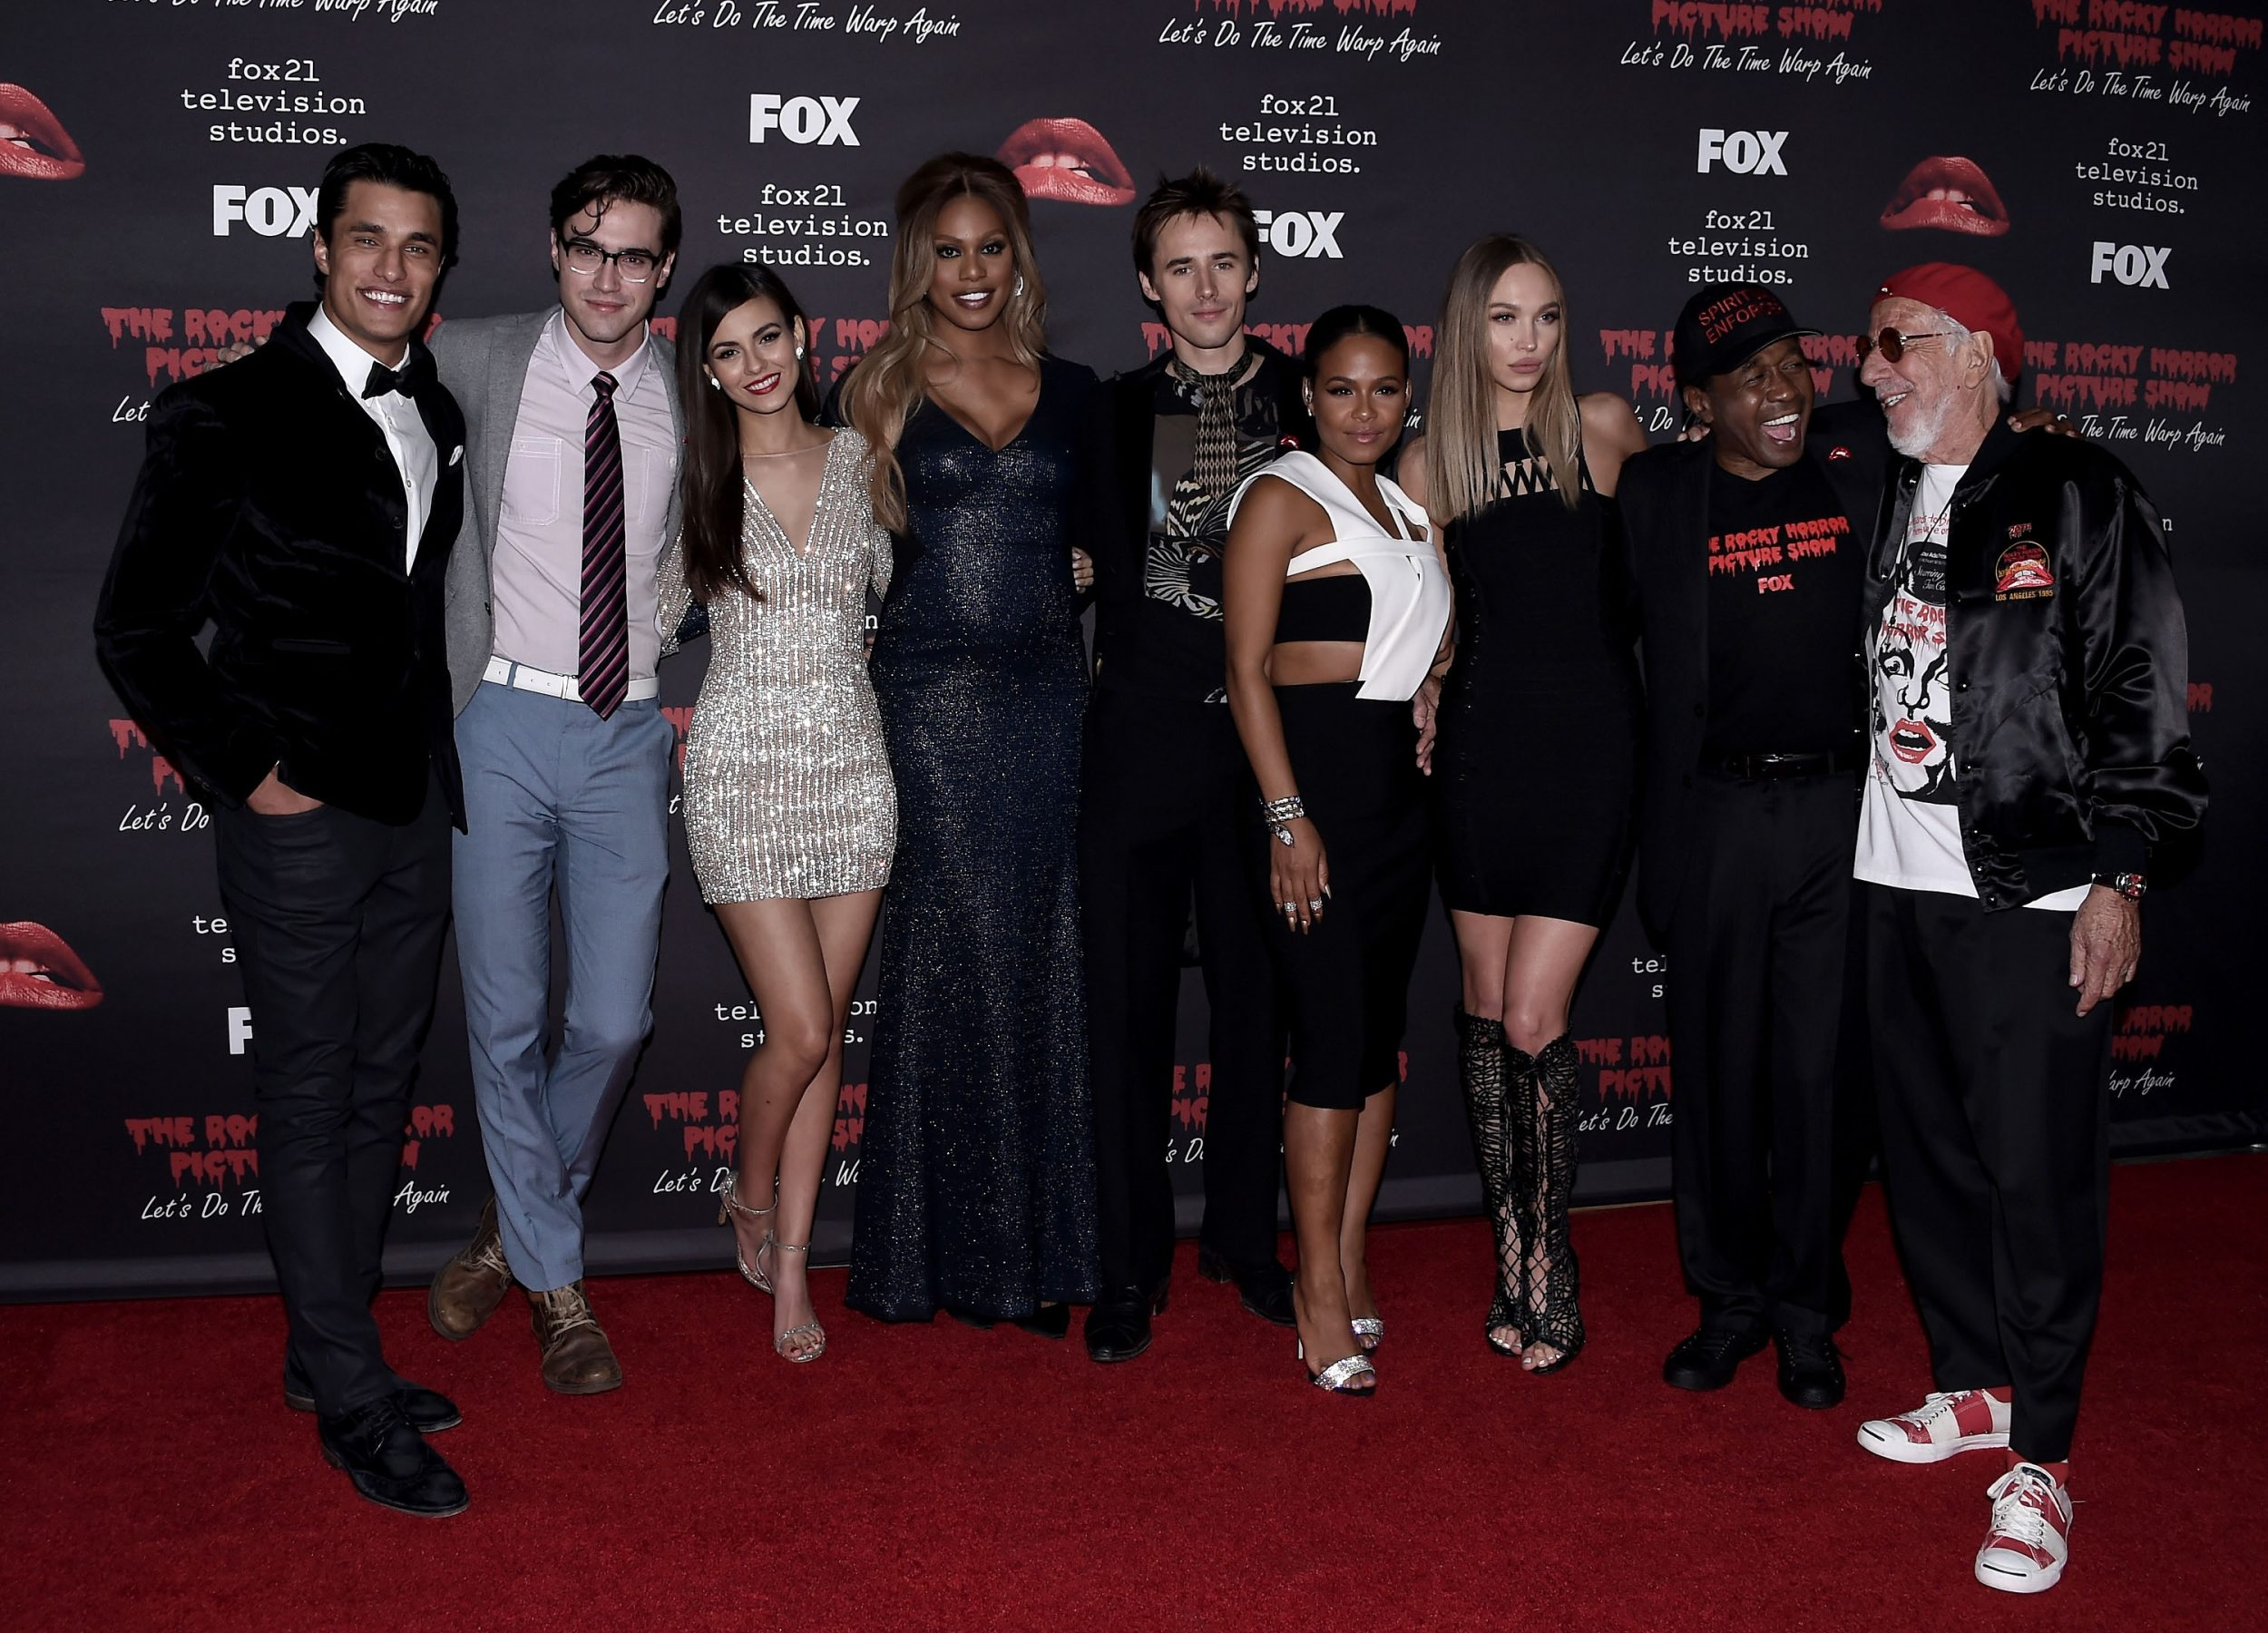 THE ROCKY HORROR PICTURE SHOW: Let's Do The Time Warp Again (and Transylvanians!): L-R: Cast members Staz Nair, Ryan McCartan, Victoria Justice, Laverne Cox, Reeve Carney, Christina Milian, Ivy Levan, Ben Vereen and Executive Producer Lou Adler arrive at THE ROCKY HORROR PICTURE SHOW: Let's Do The Time Warp Again (and Transylvanians!) premiere party red carpet at The Roxy on Thursday, Oct. 13, in Los Angeles, CA. THE ROCKY HORROR PICTURE SHOW: Let's Do The Time Warp Again (And Transylvanians!) premieres Thursday, Oct. 20 (8:00-10:00 PM ET/PT) on FOX. © 2016 FOX BROADCASTING CR: Scott Kirkland/FOX